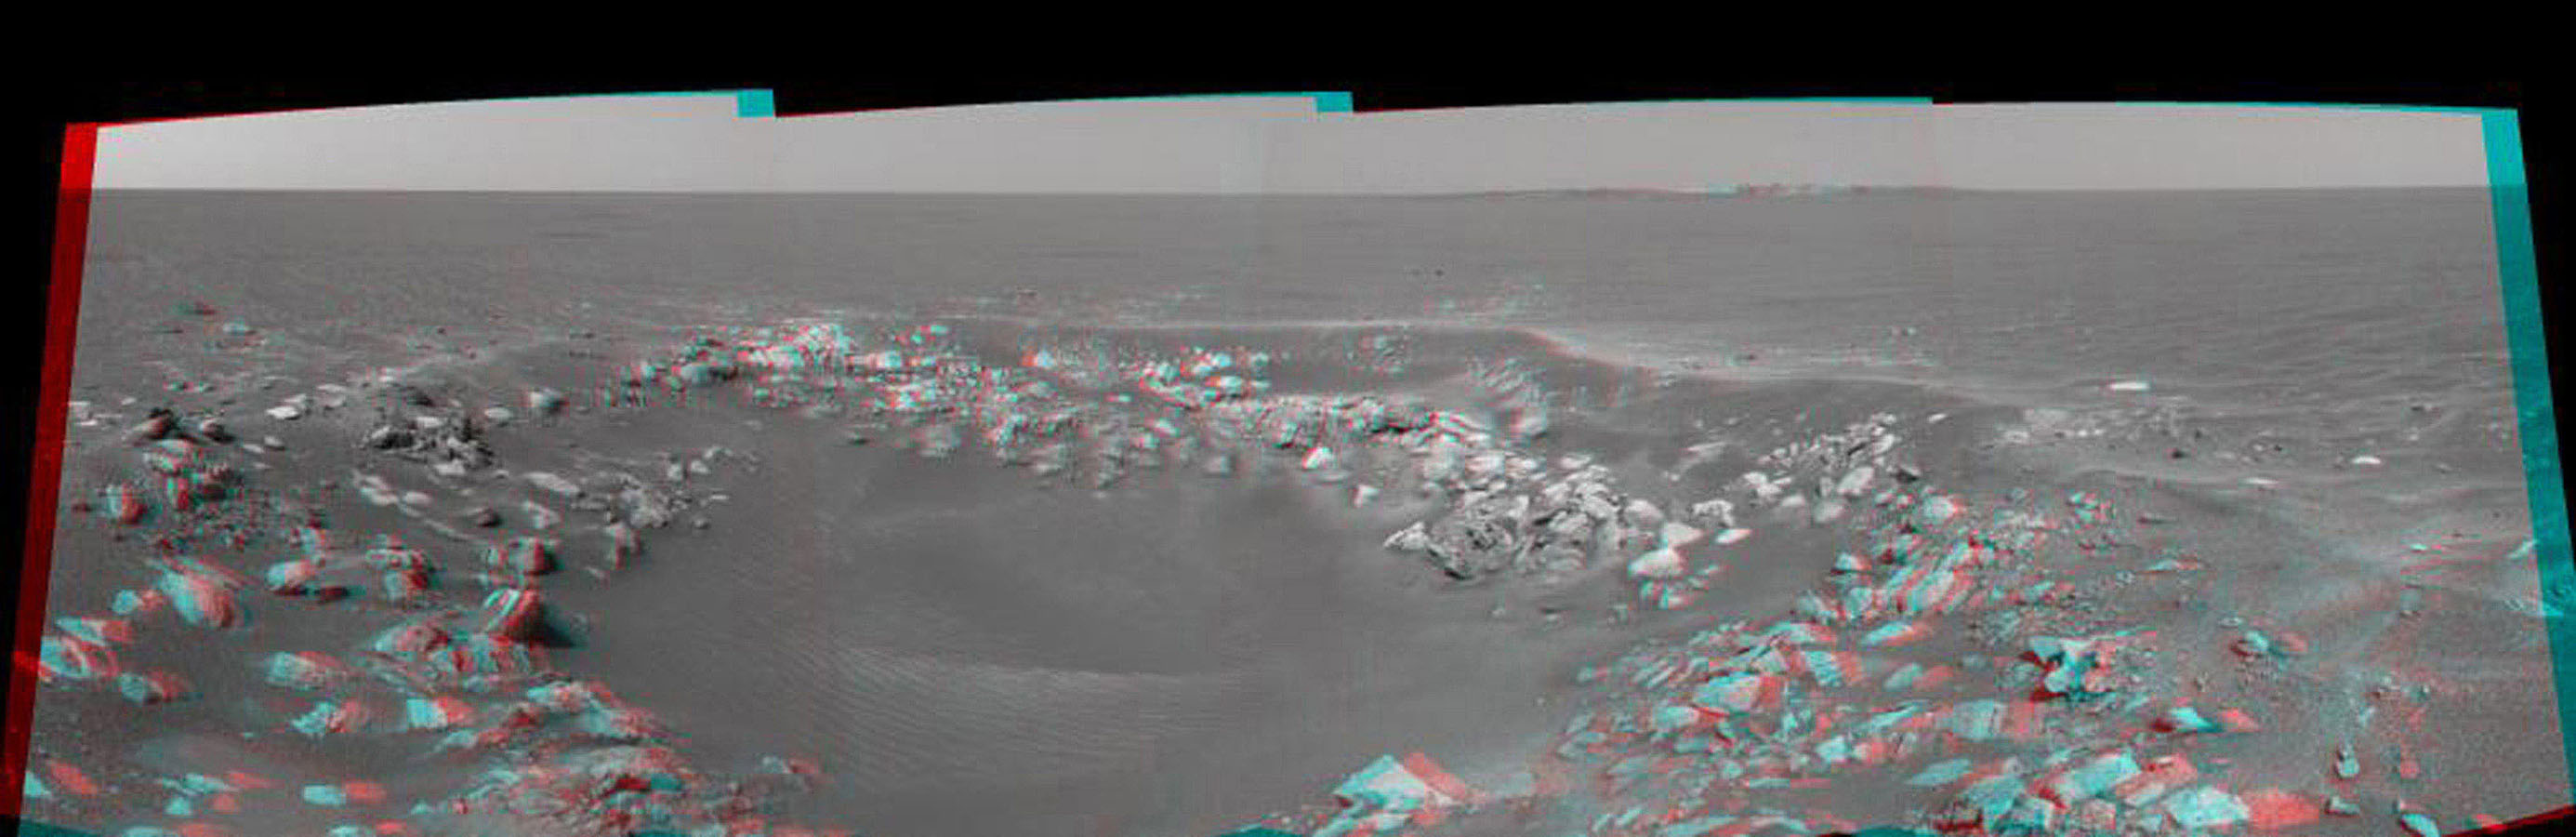 This 3-D cylindrical projection was taken by the navigation camera onboard NASA's Mars Exploration Rover Opportunity. This is a region dubbed 'Fram Crater' located .3 miles from 'Eagle Crater' and roughly 820 feet from 'Endurance Crater' (upper right).